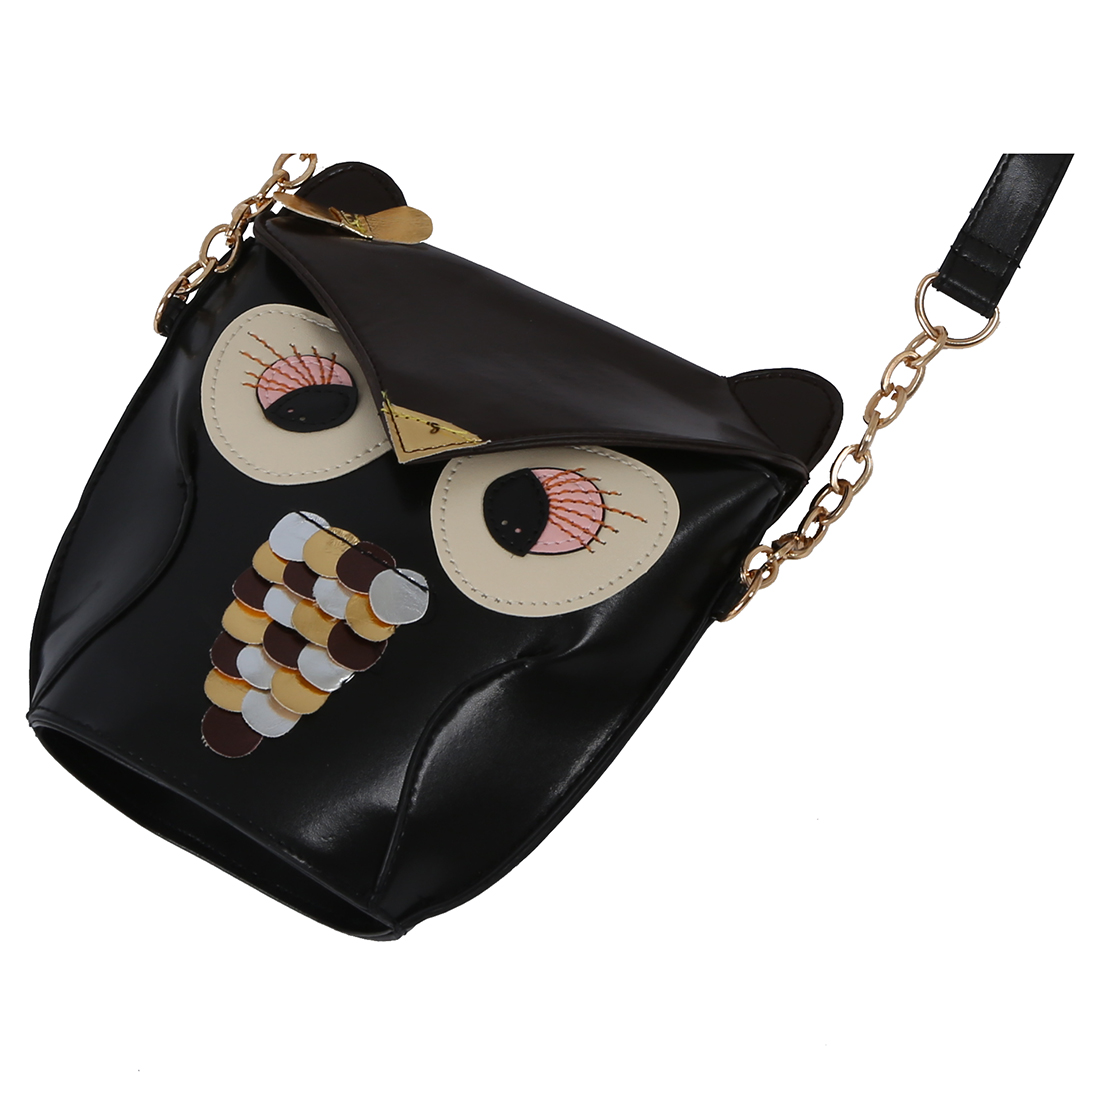 SNNY -Ladies Fashion Adjustable Owl Pattern Chain Shoulder Bag